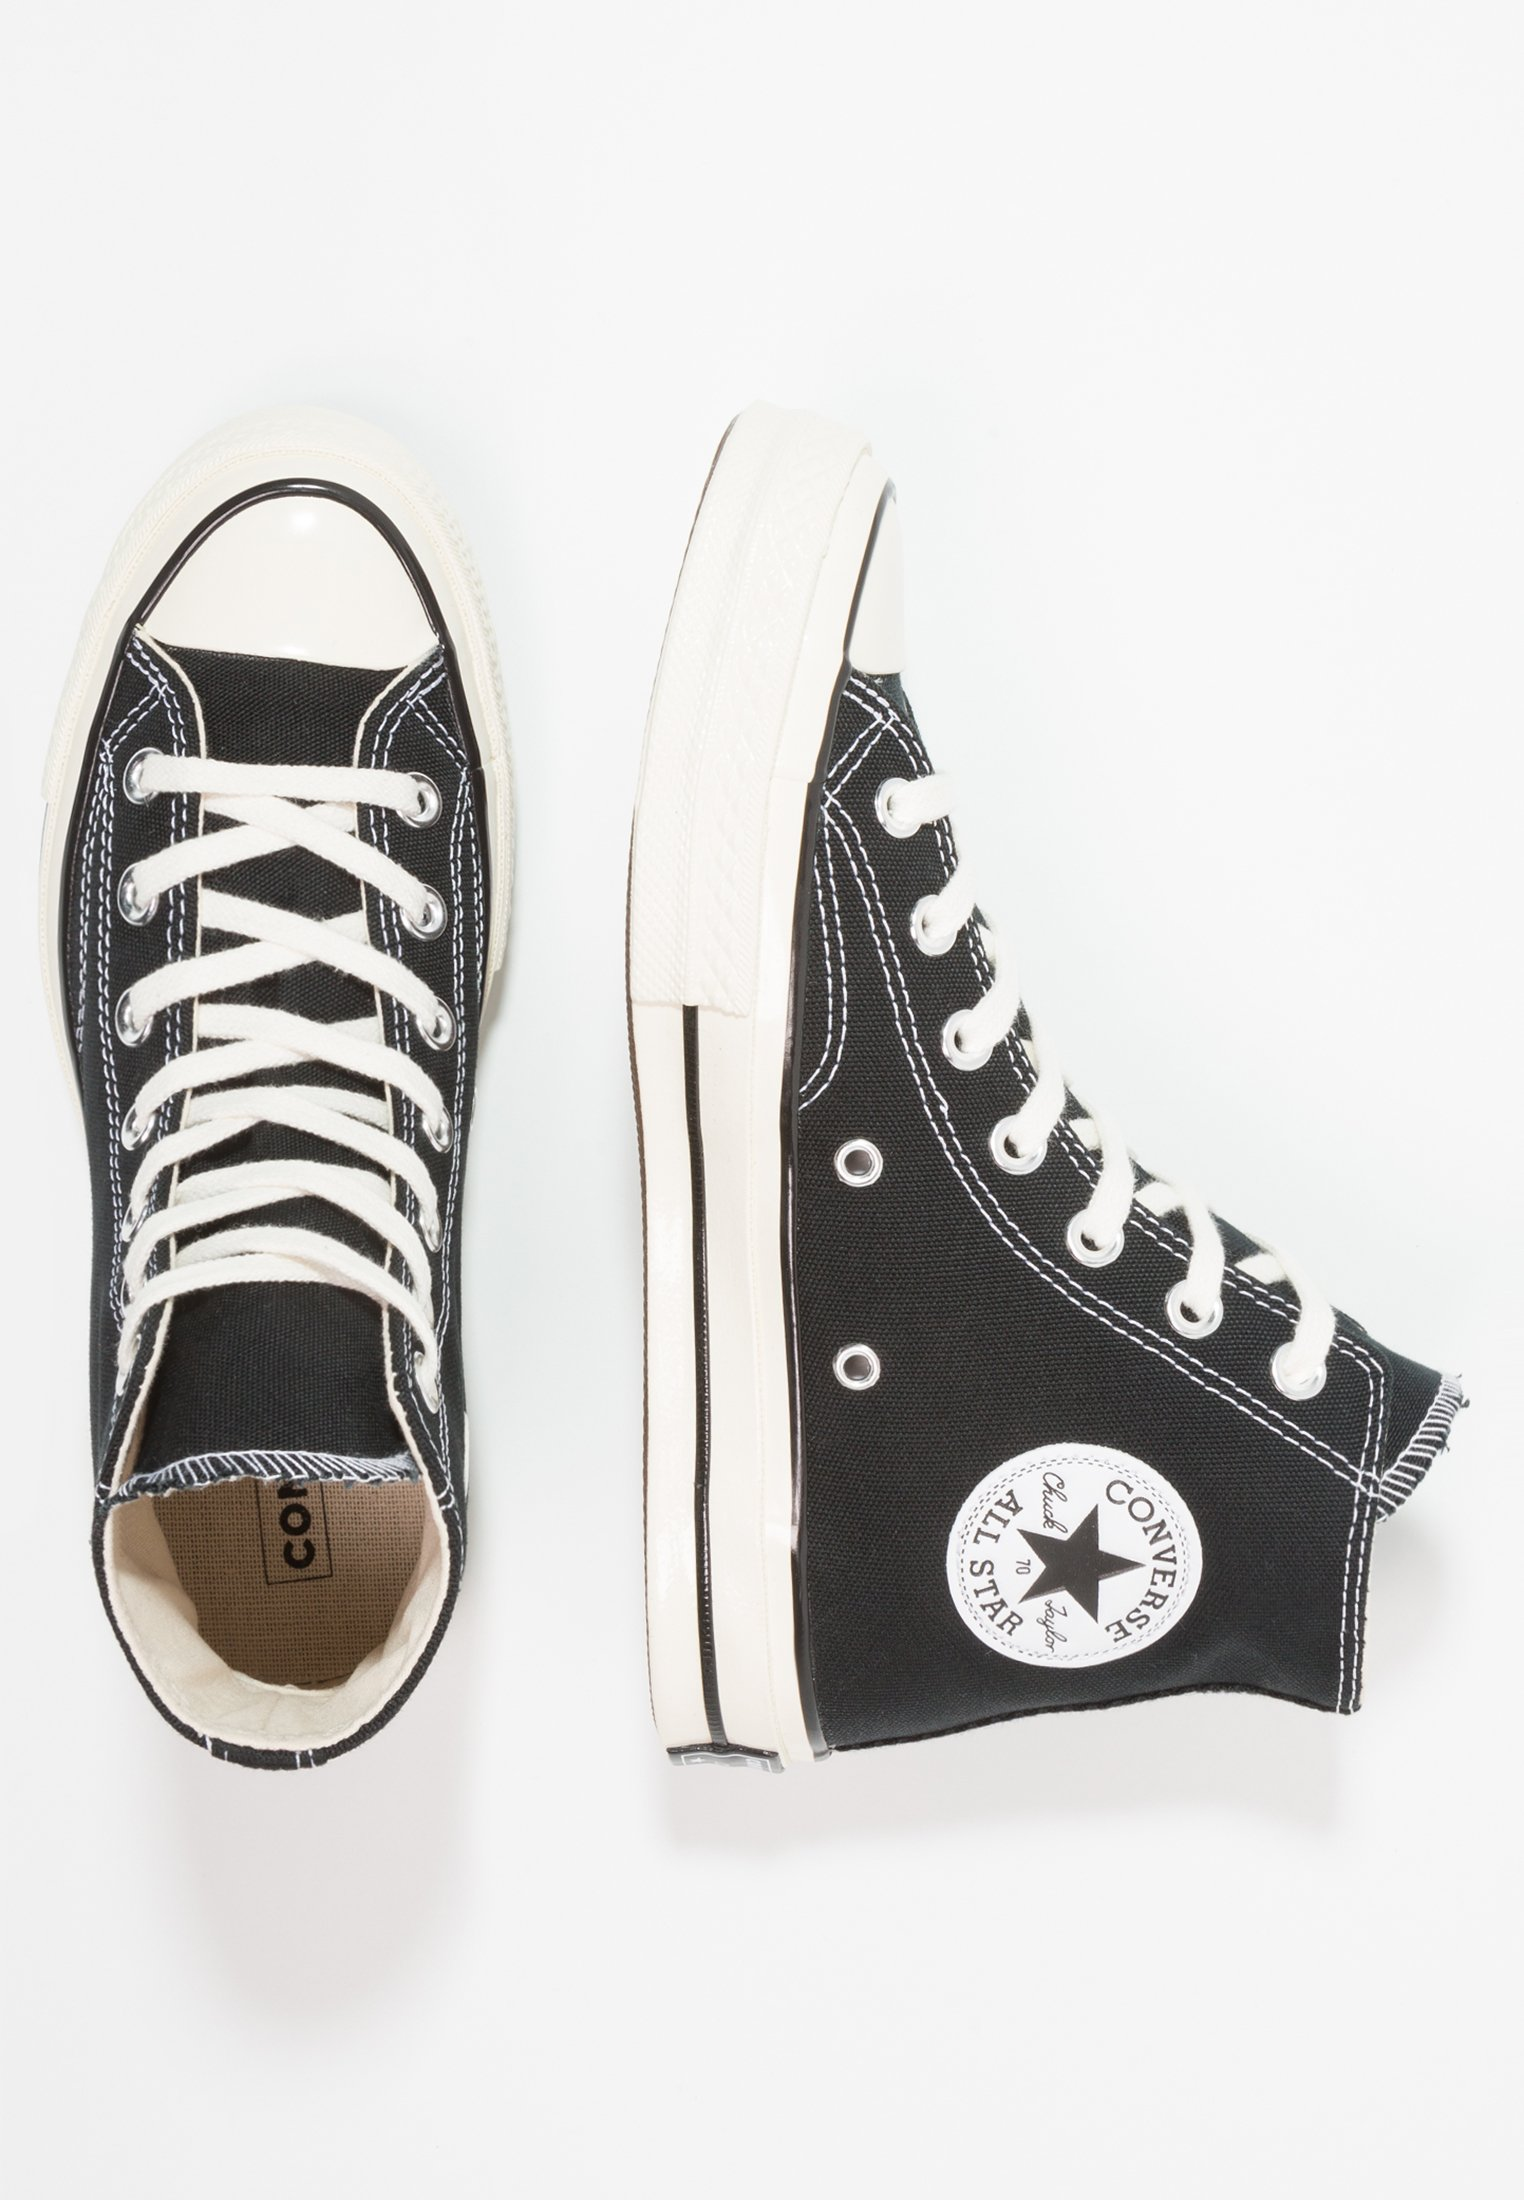 CHUCK TAYLOR ALL STAR 70 HI Sneakers alte black